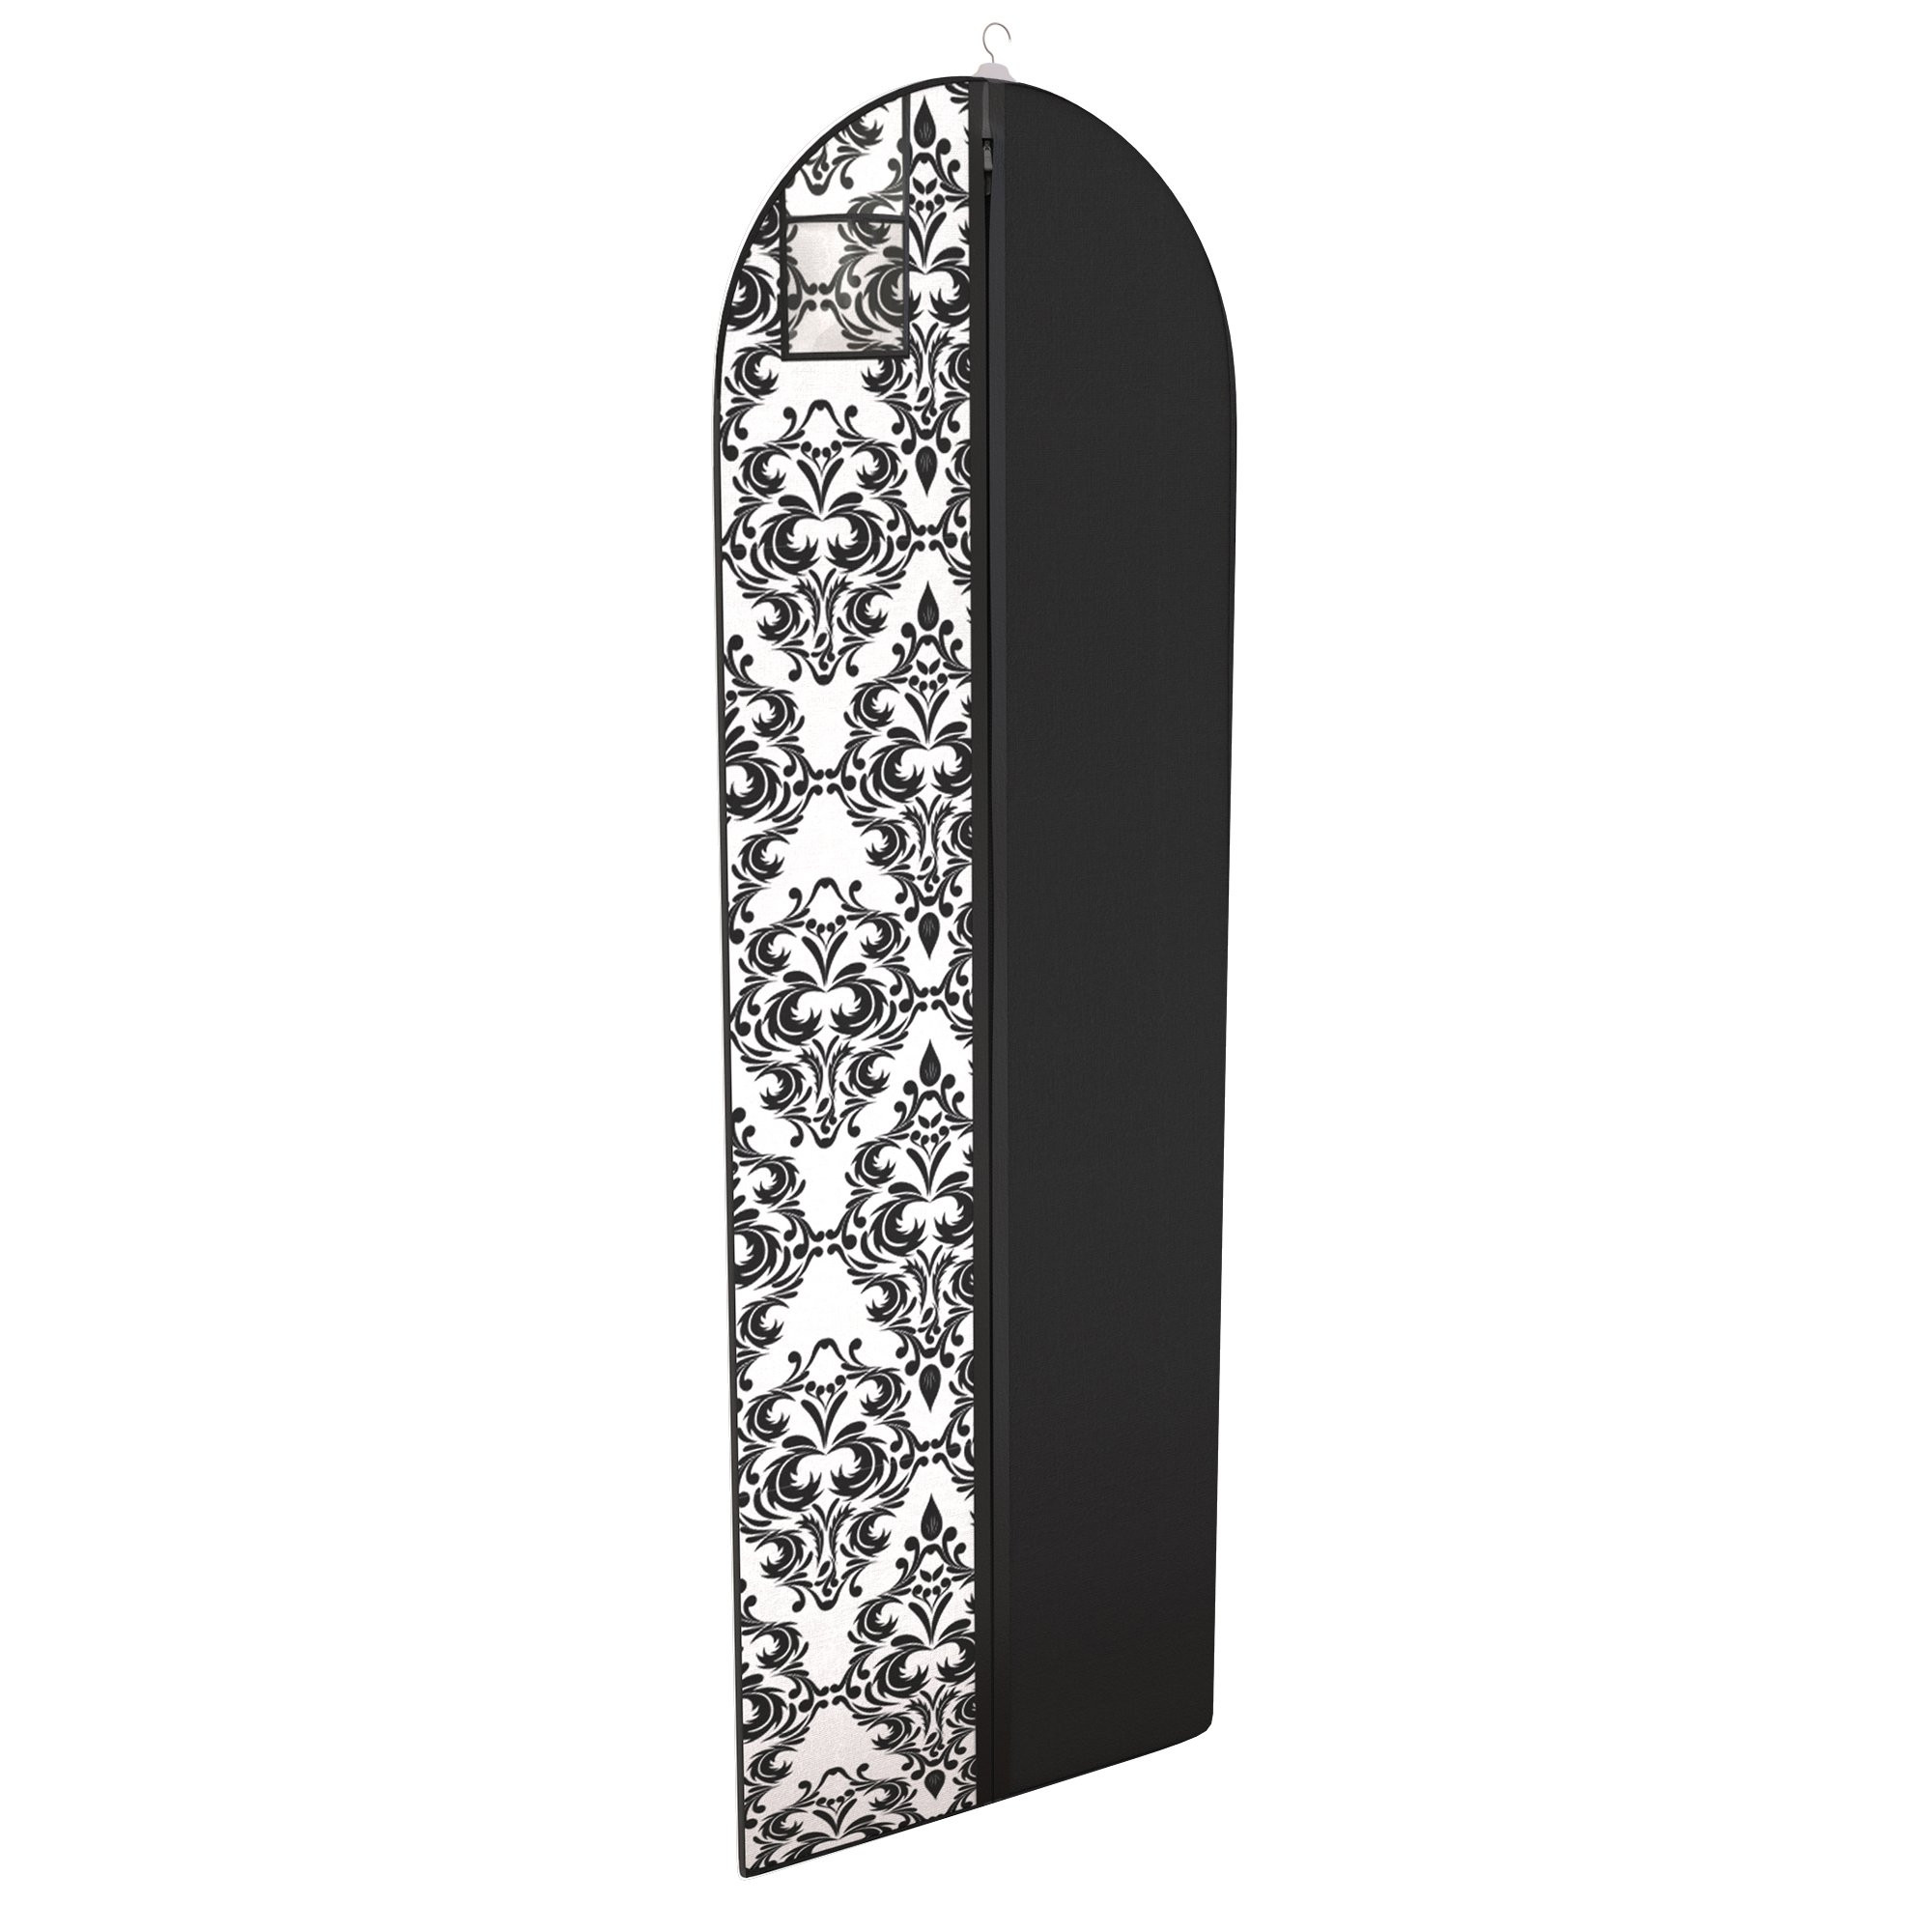 Gown Garment Bag for Women's Prom and Bridal Wedding Dresses - ID Window - 72'' x 24'' - Black and White Damask - by Your Bags